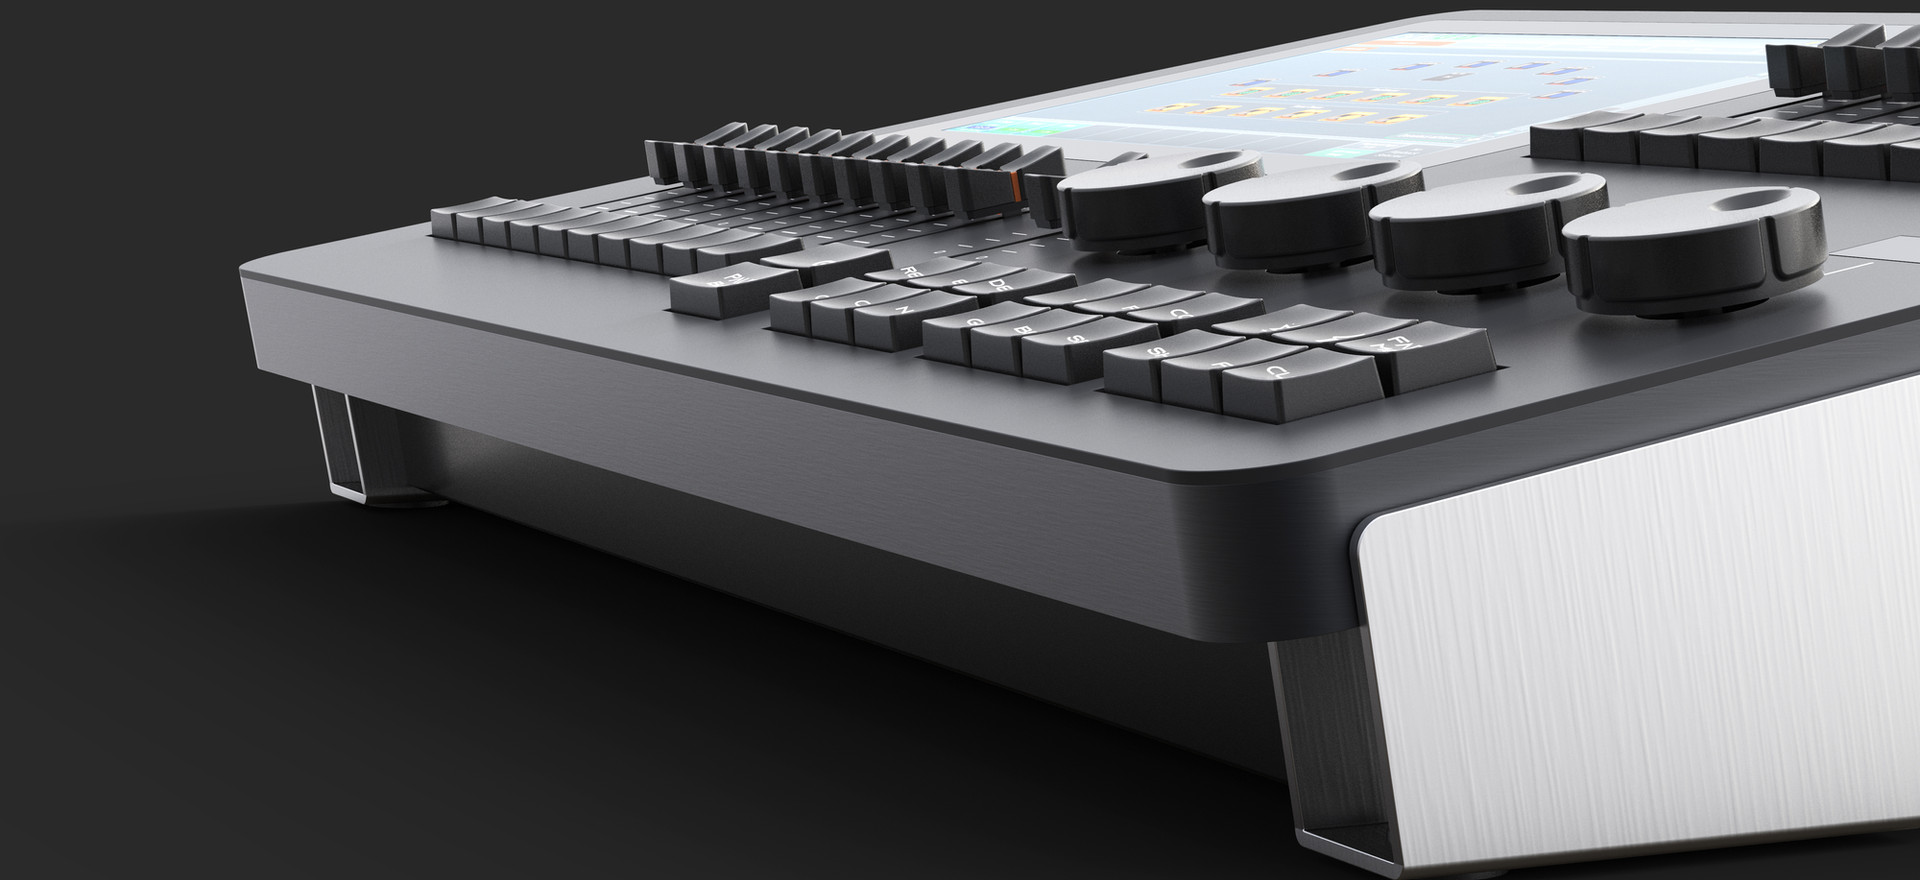 Lighting Console - Showtec LAMPY for Highlite International